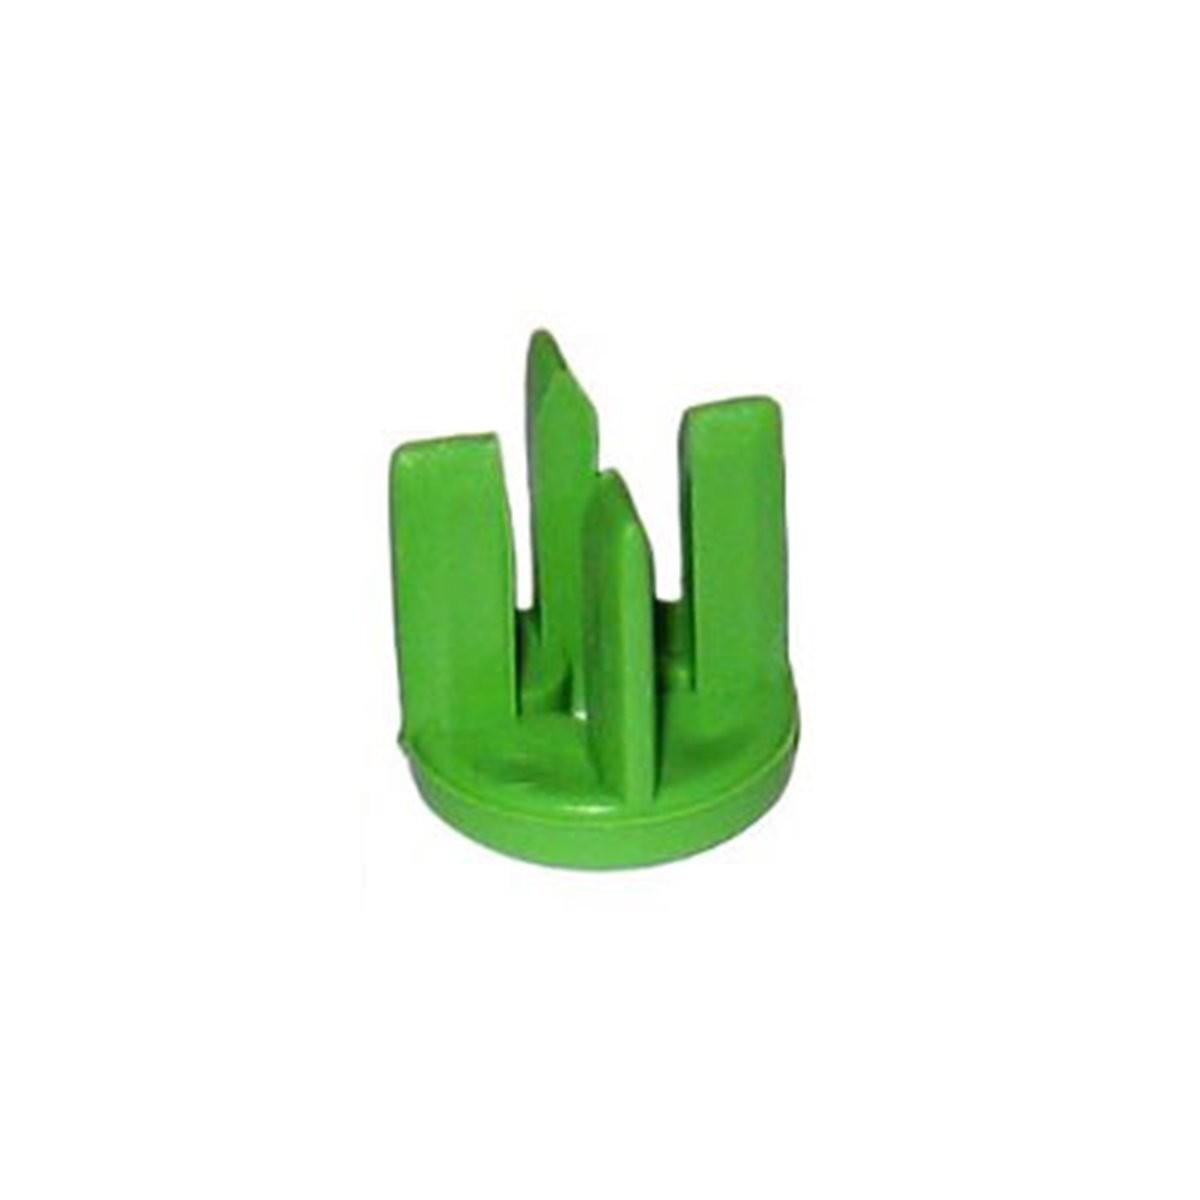 Replacement Part for Peel S Vegetable Peeler